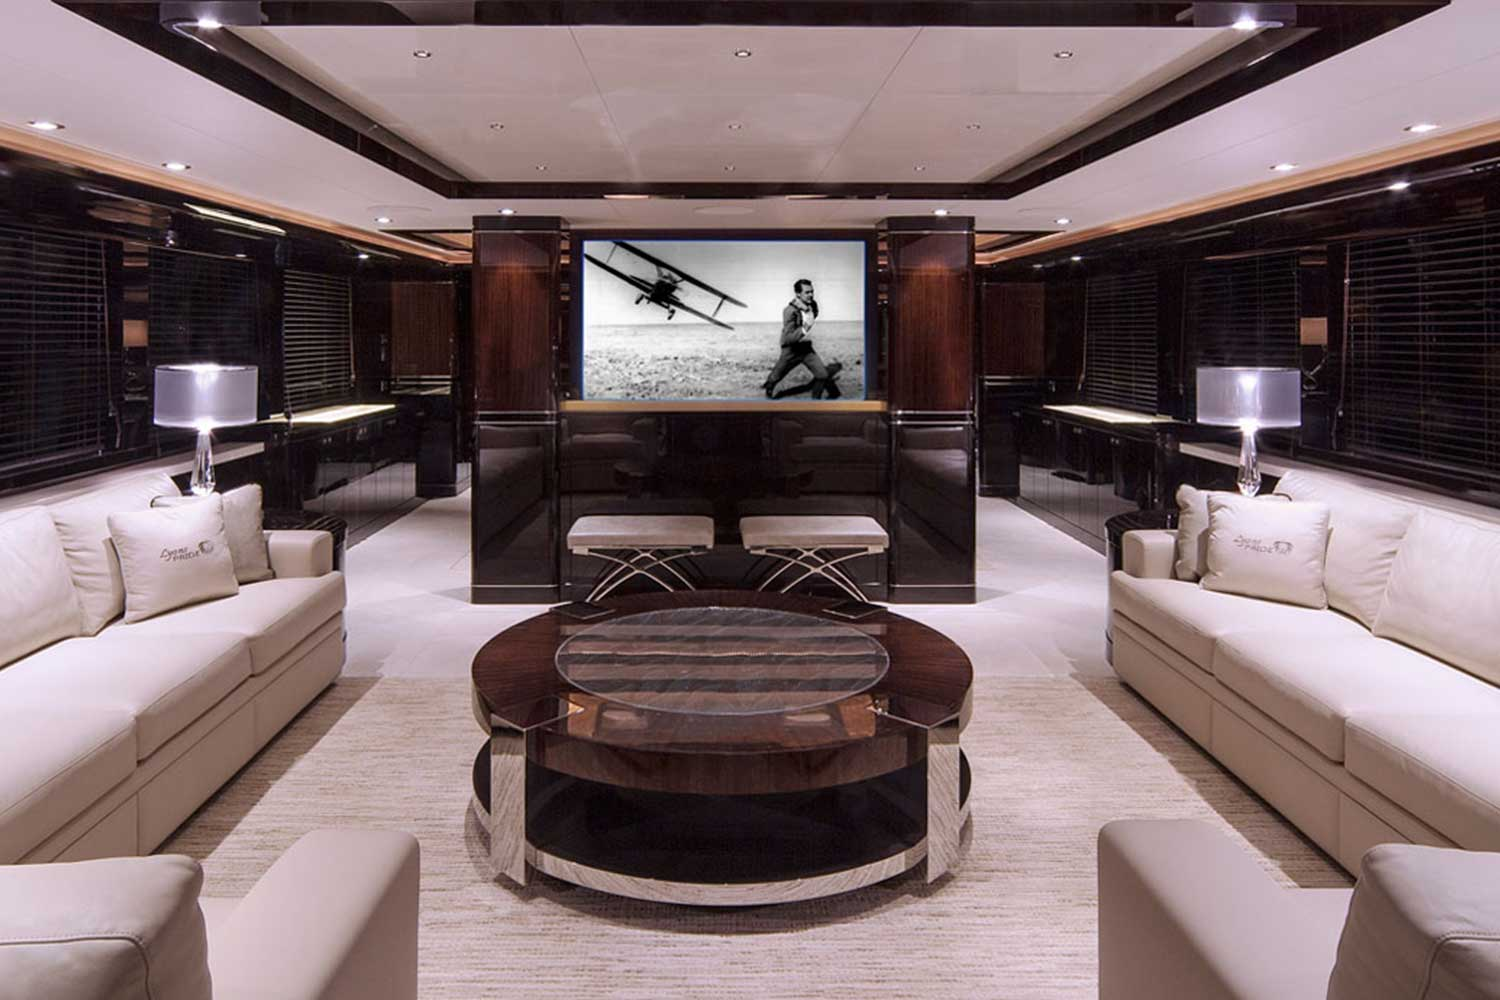 Pop-up Television on Yacht